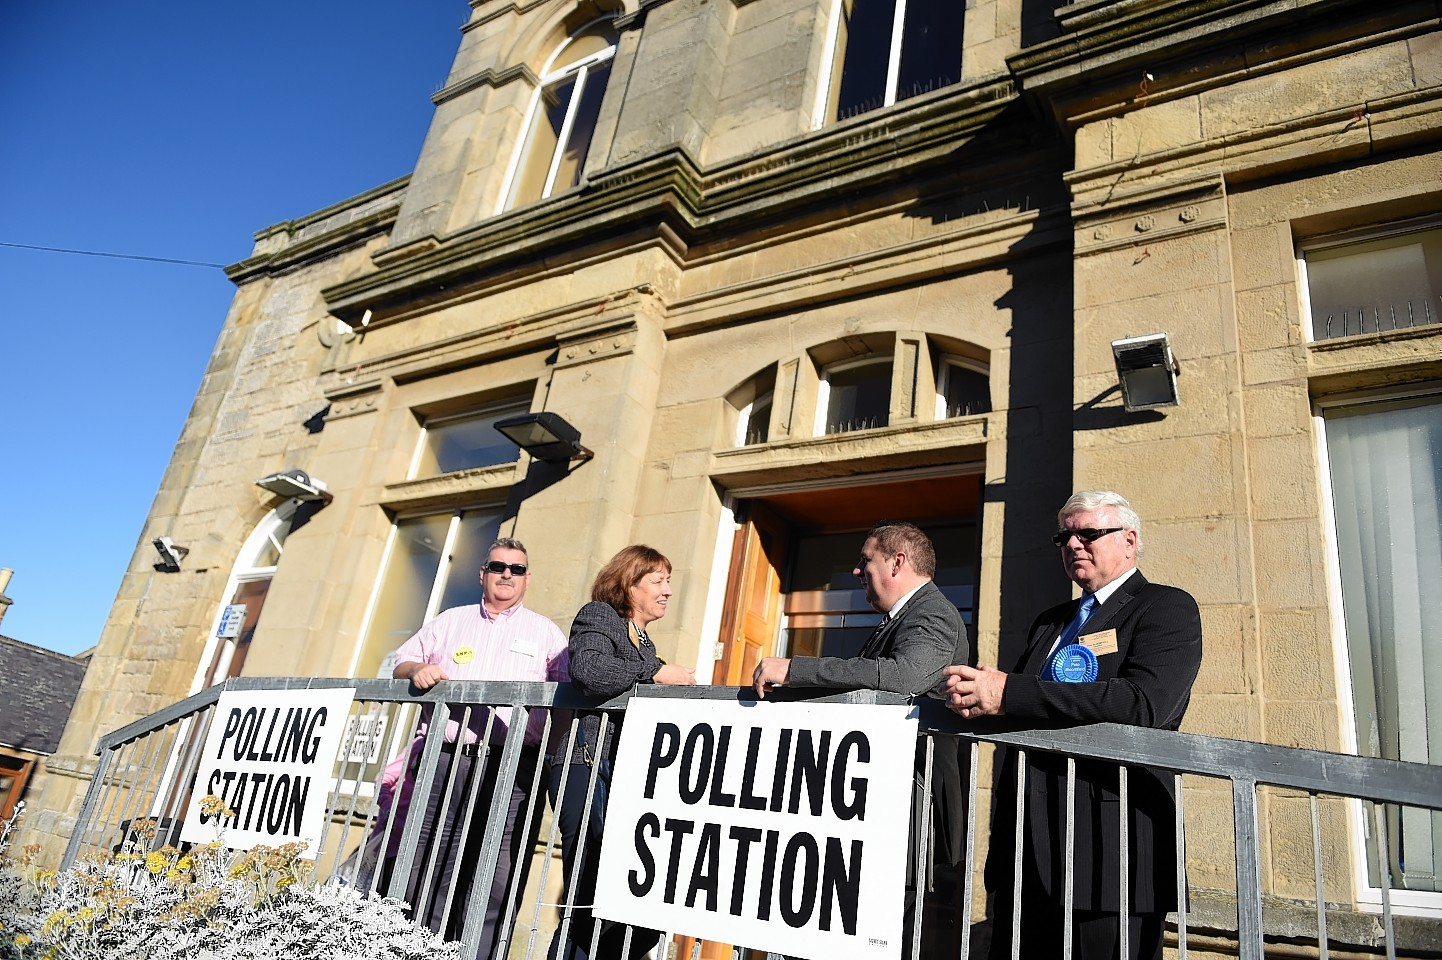 Agents and candidates outside the Polling Station at the Town Hall, Lossiemouth